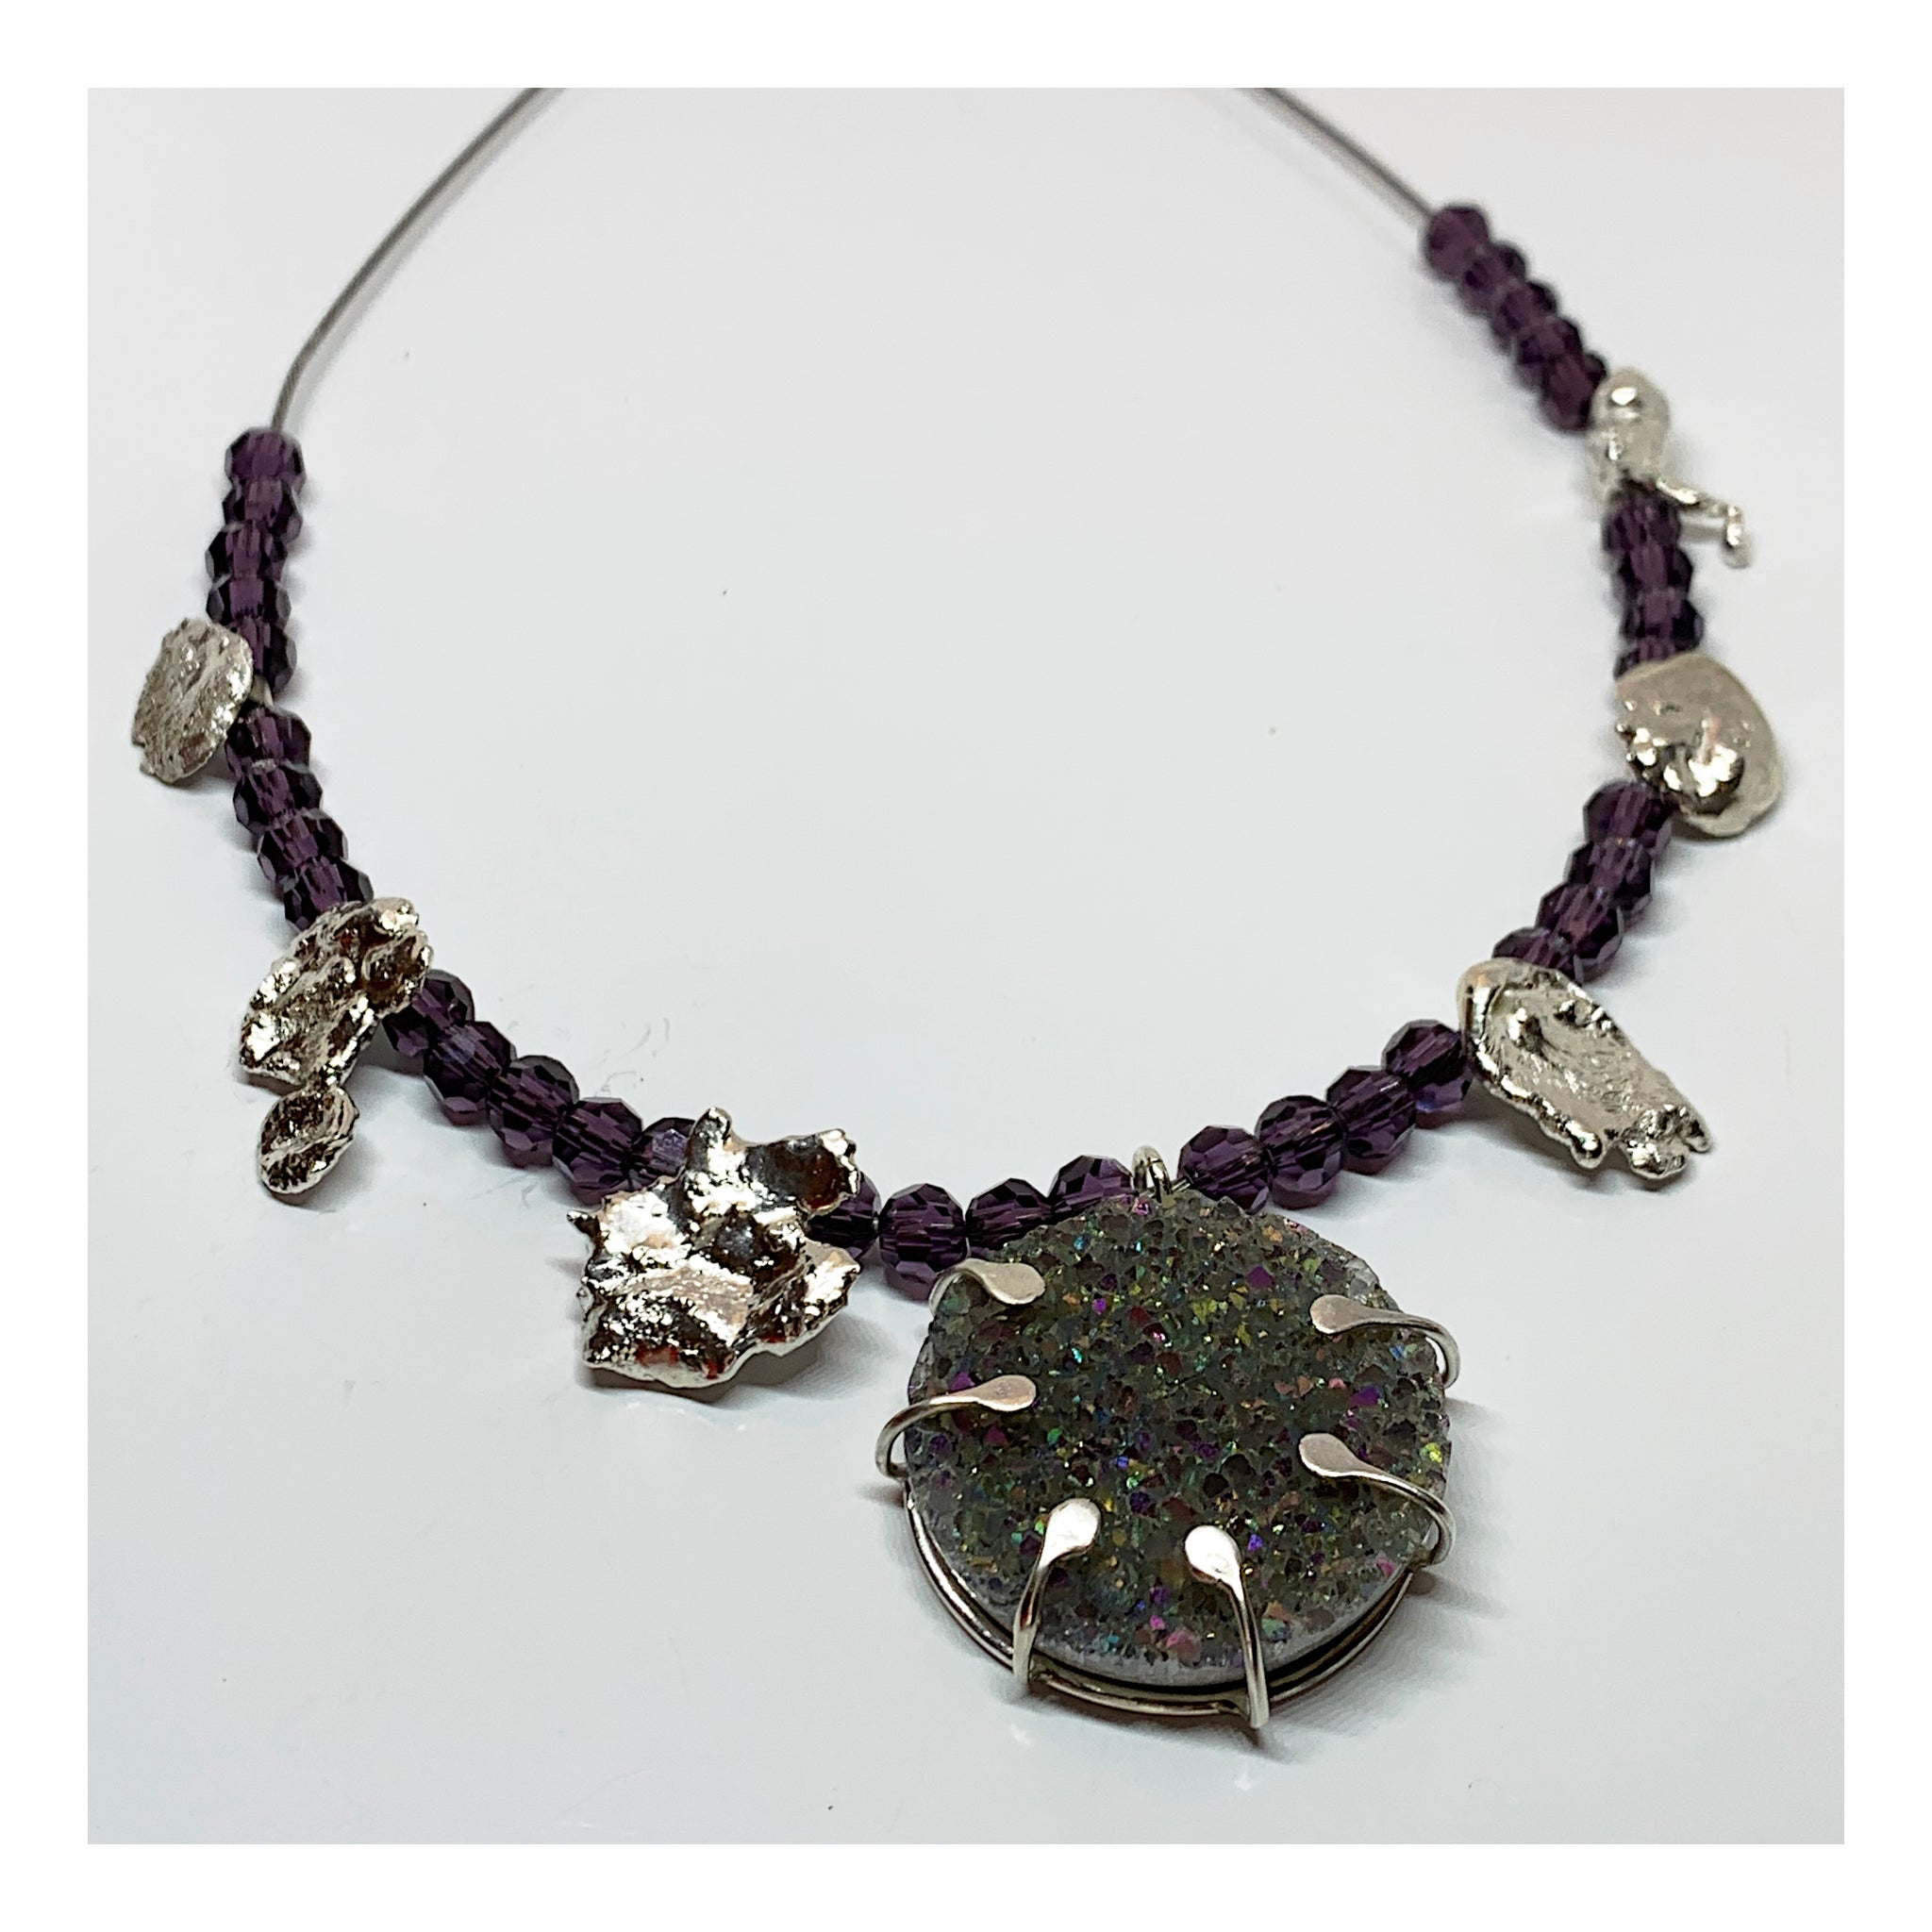 Purple Druzy Stone and Sterling Silver Necklace - Crystal Bead Necklace - One of a Kind Jewelry